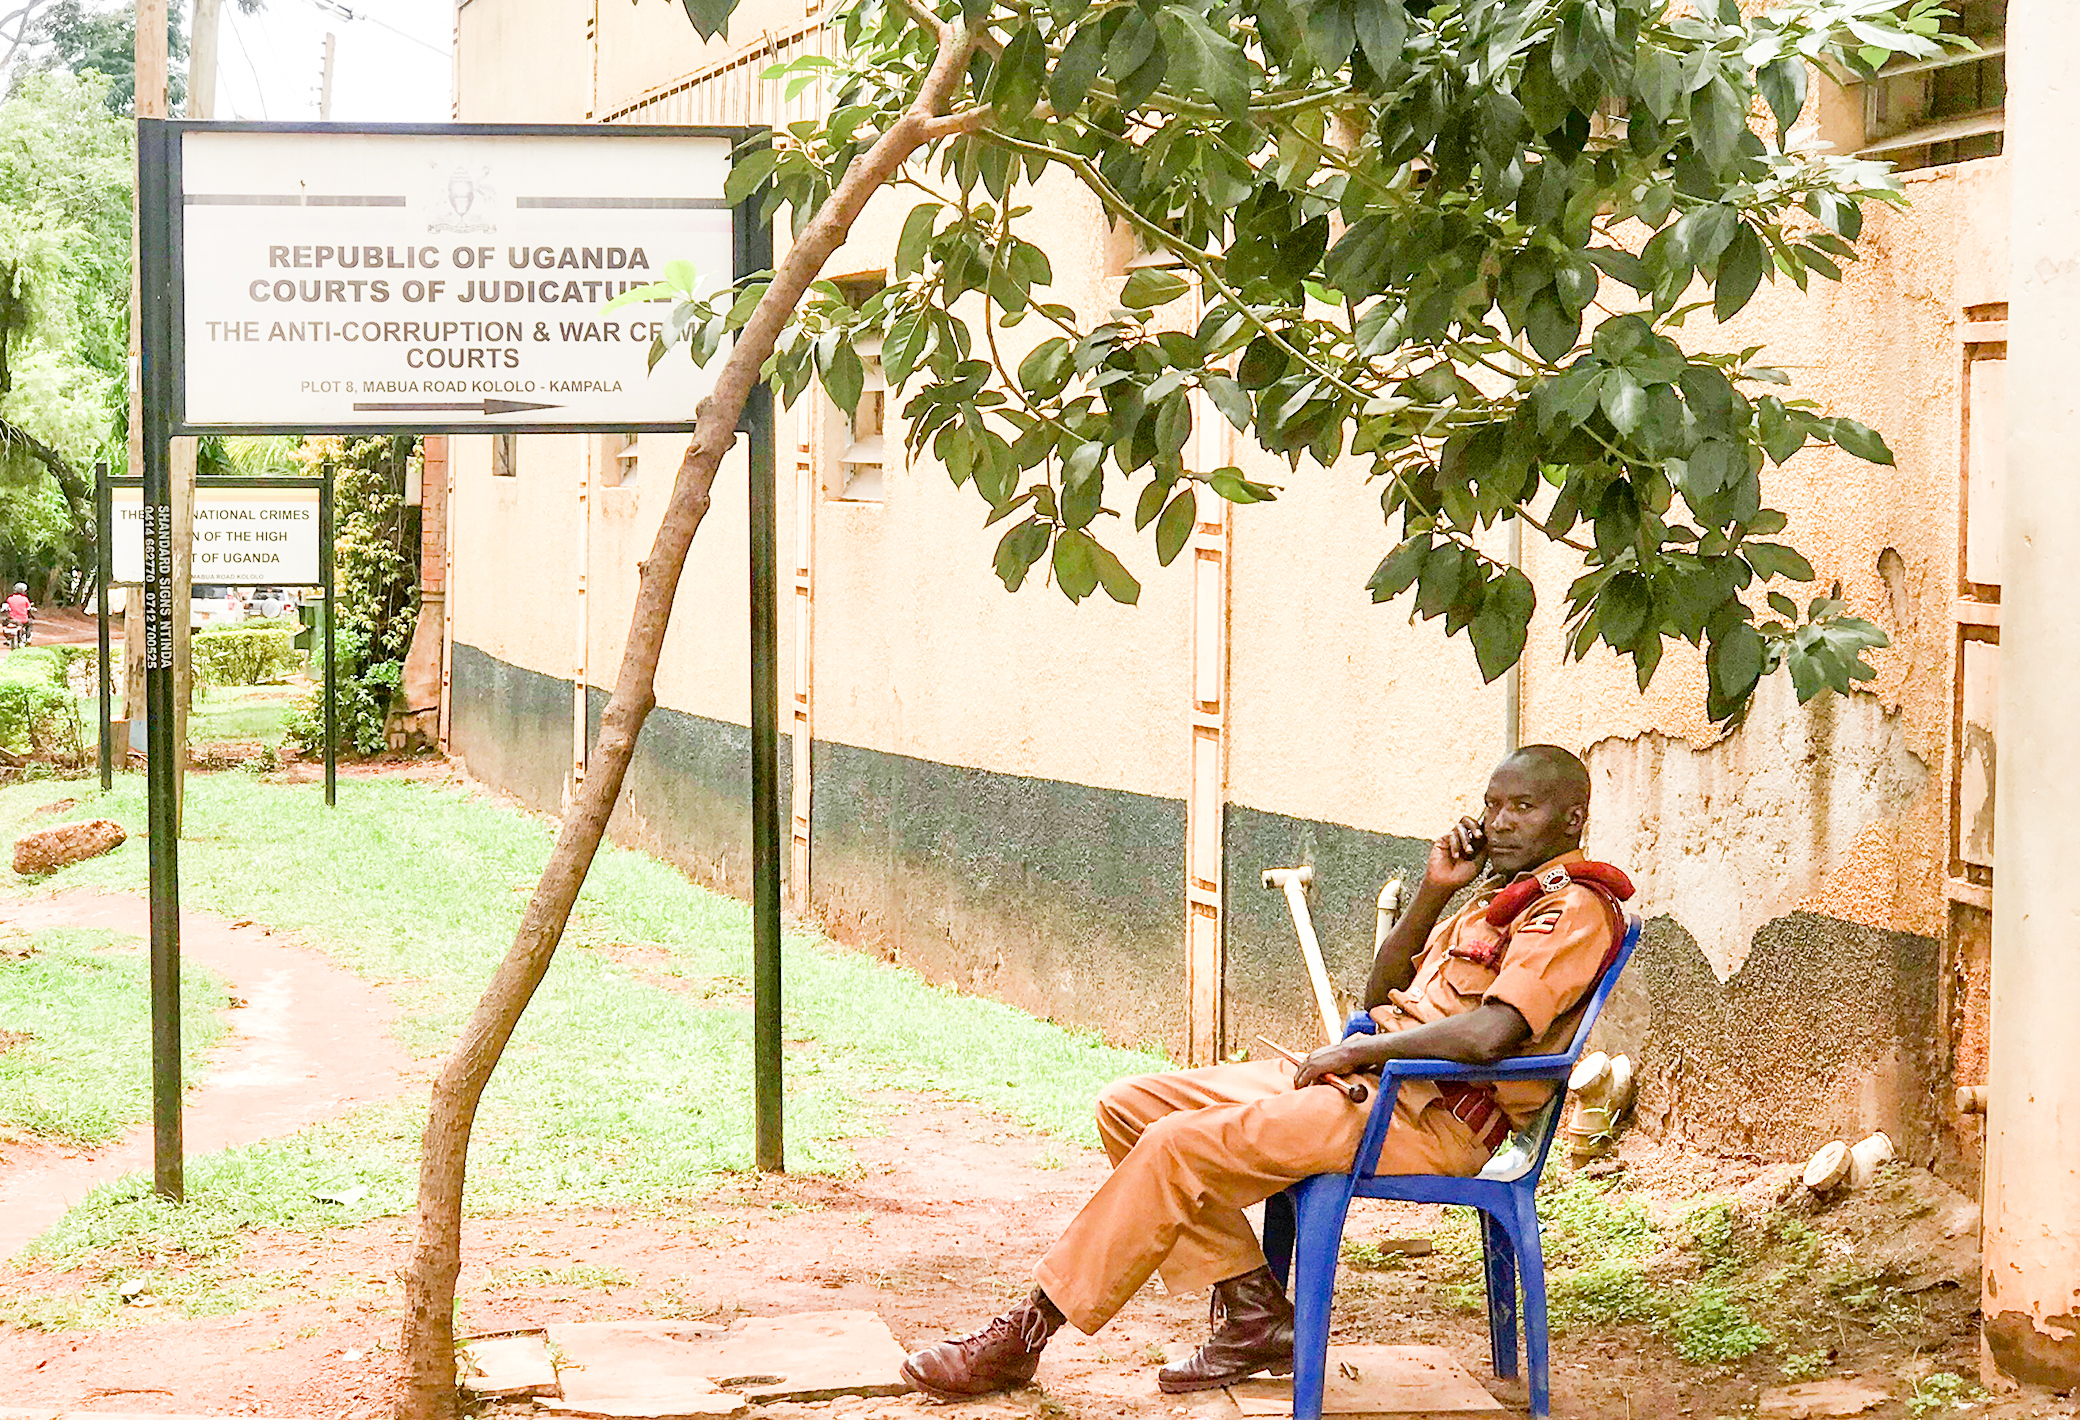 Uganda's Anti-Corruption Court was established in 2008 as a special division of the High Court to adjudicate corruption and corruption related cases. Photo: Vibeke Quaade